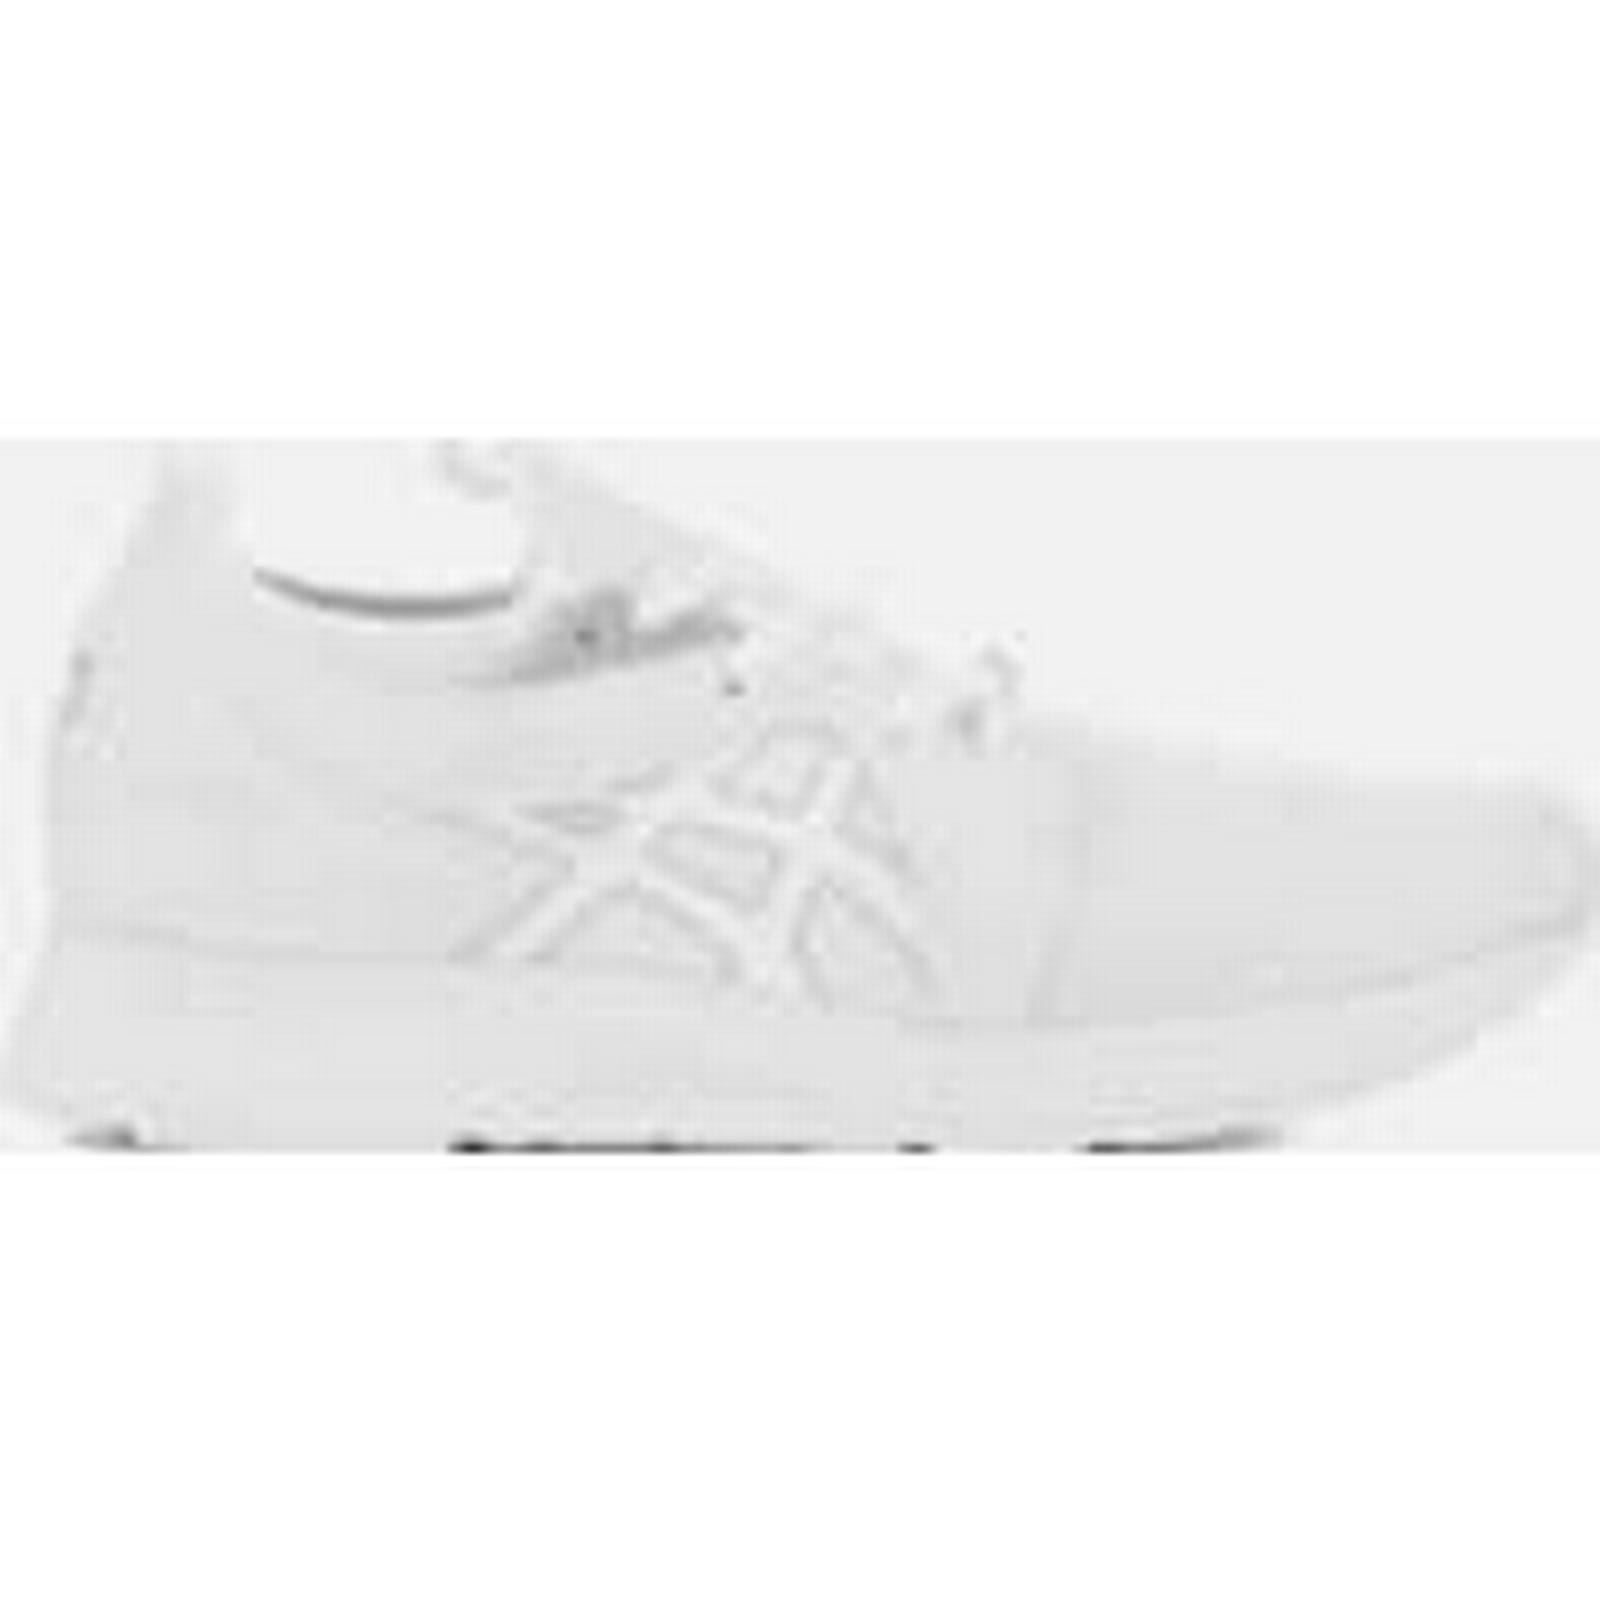 Asics Lifestyle Gel-Lyte V RB Trainers 8 - White - UK 8 Trainers - White 43471c